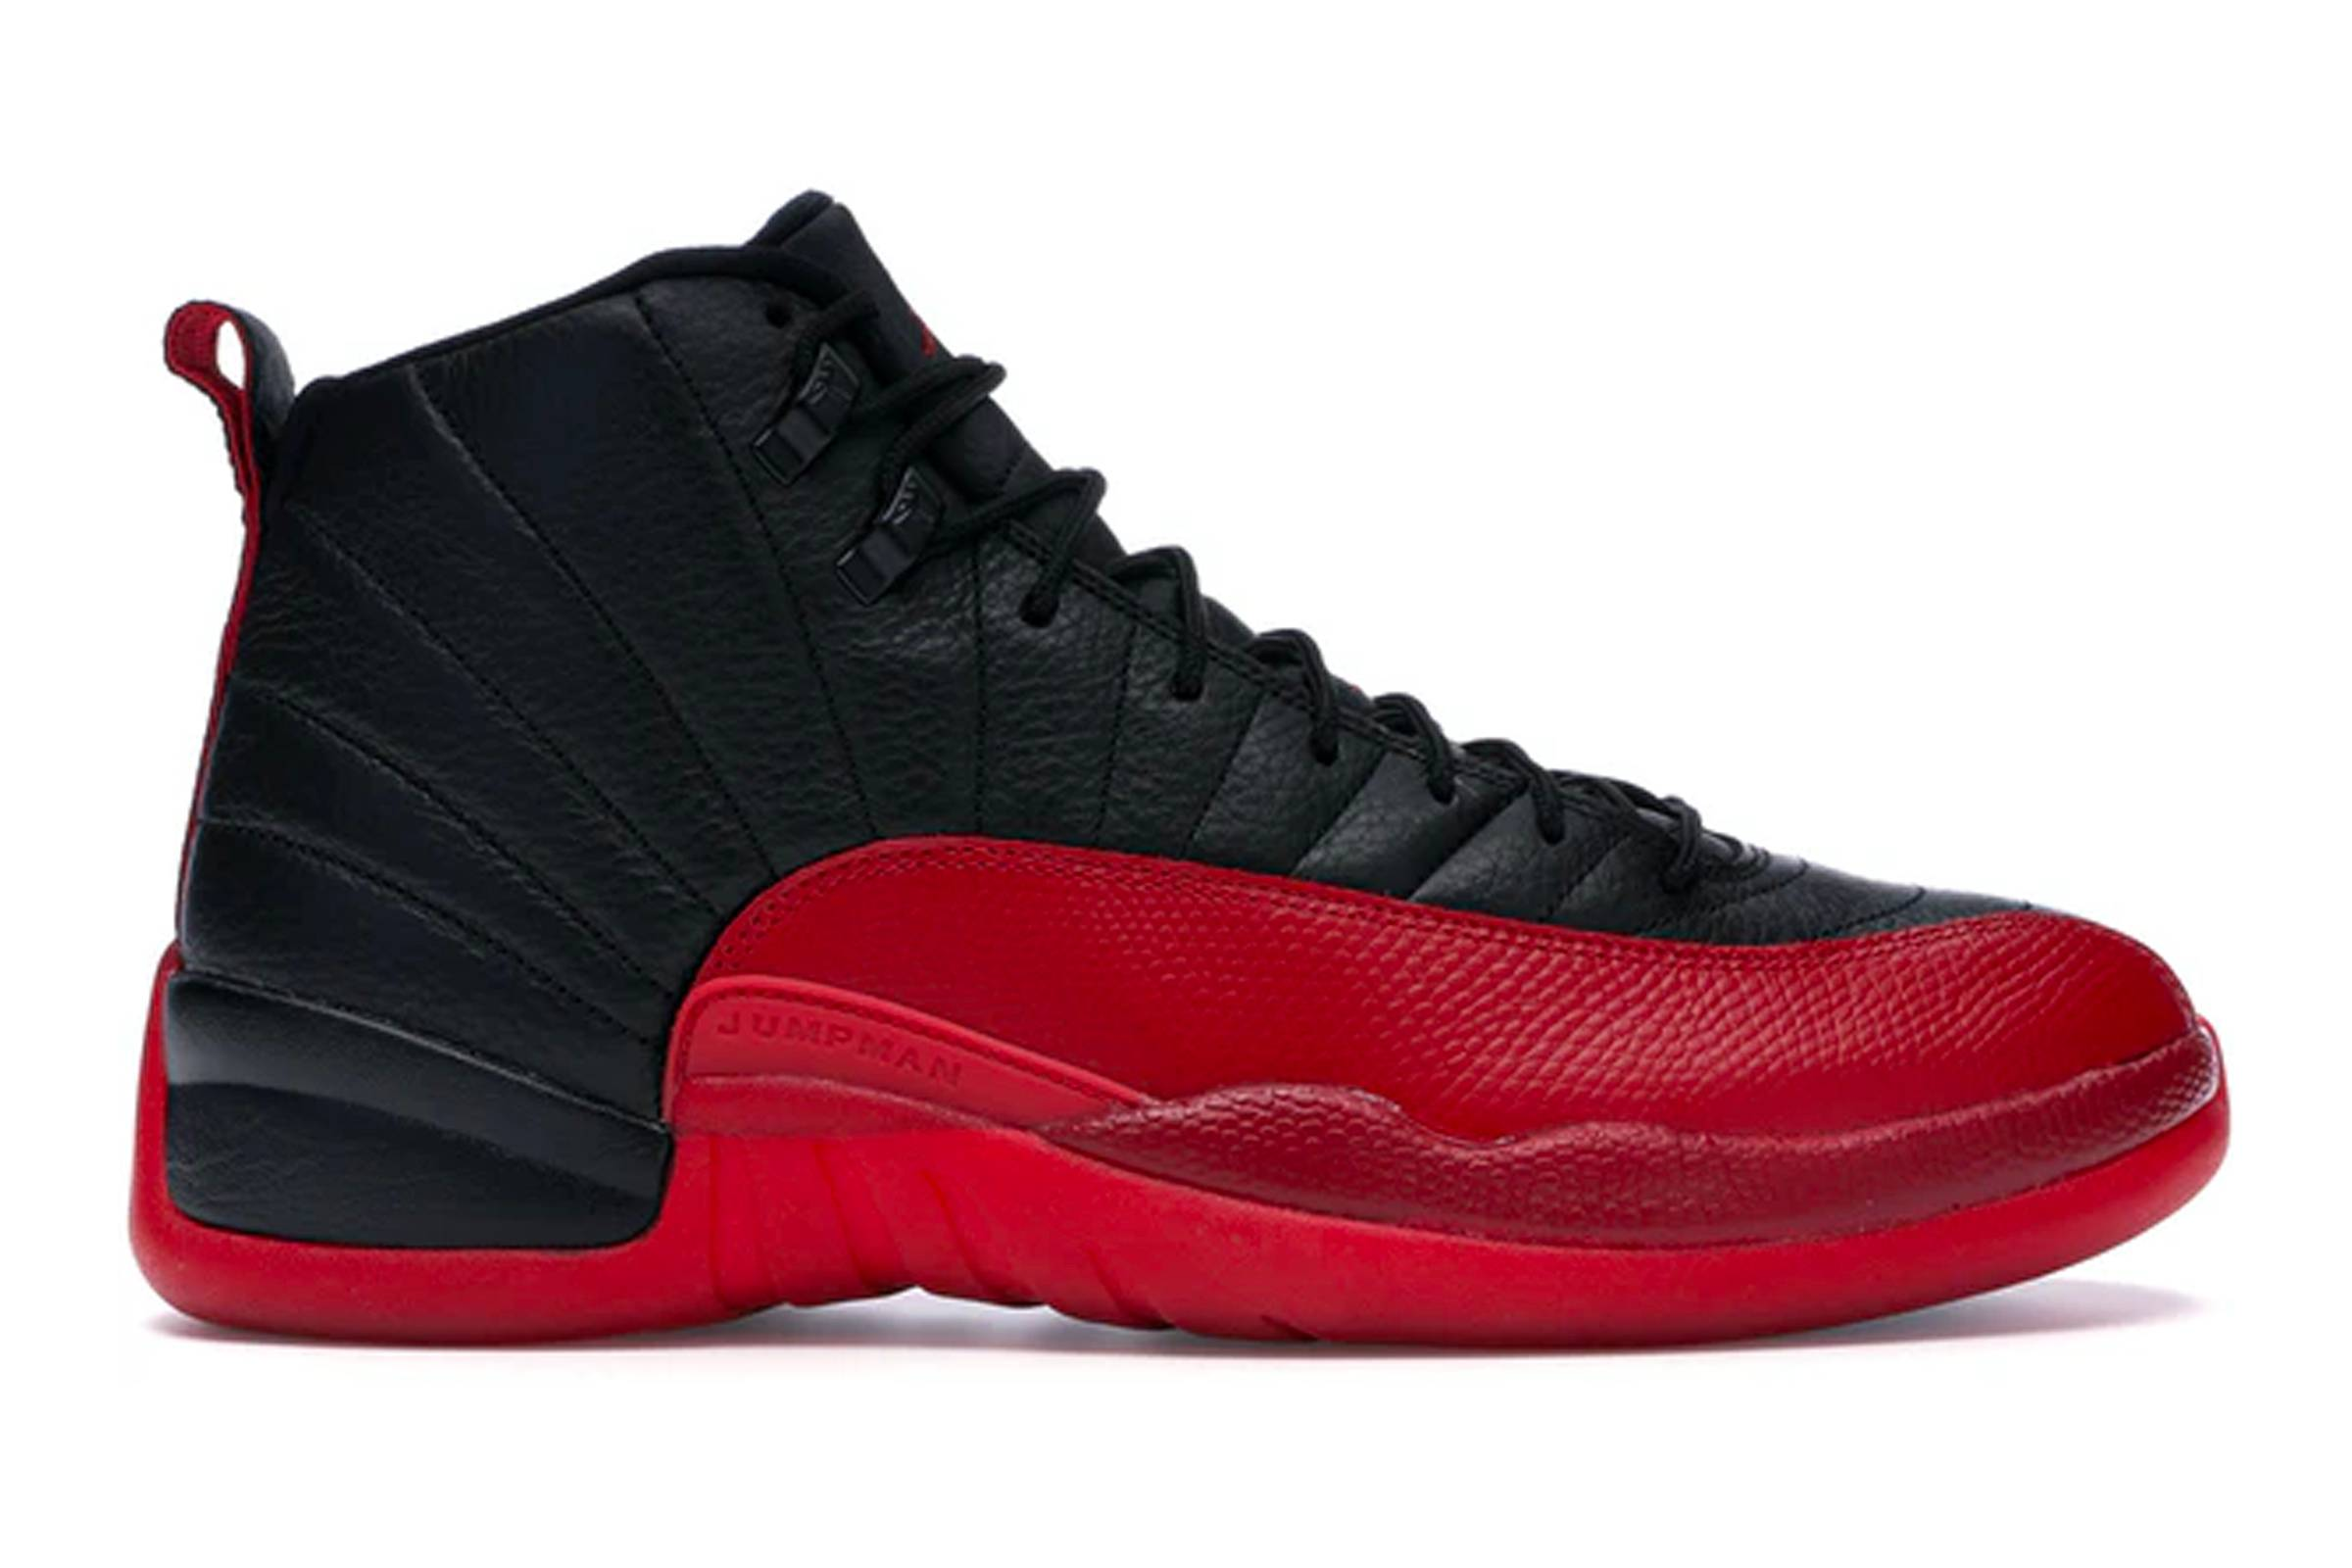 """Greater than the """"Flu Game"""": A History of the Jordan XII"""